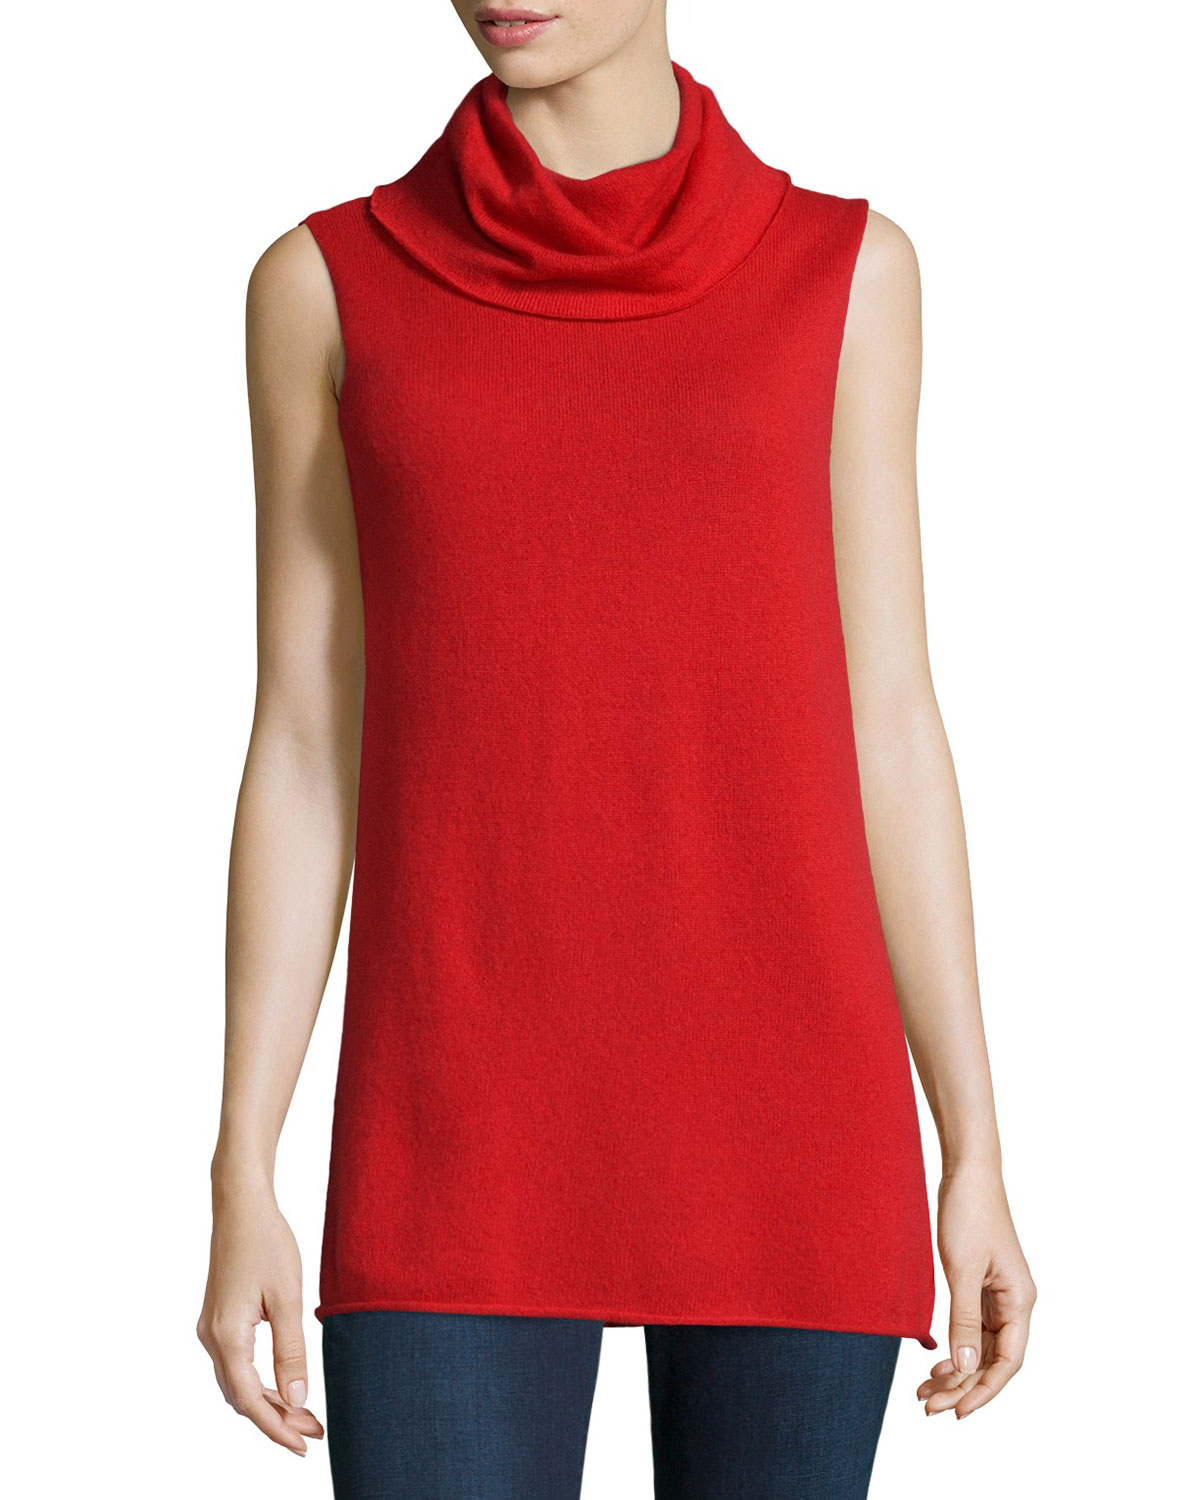 Cashmere Sleeveless Cowl Sweater, Size: SMALL, Red - Neiman Marcus Cashmere Collection